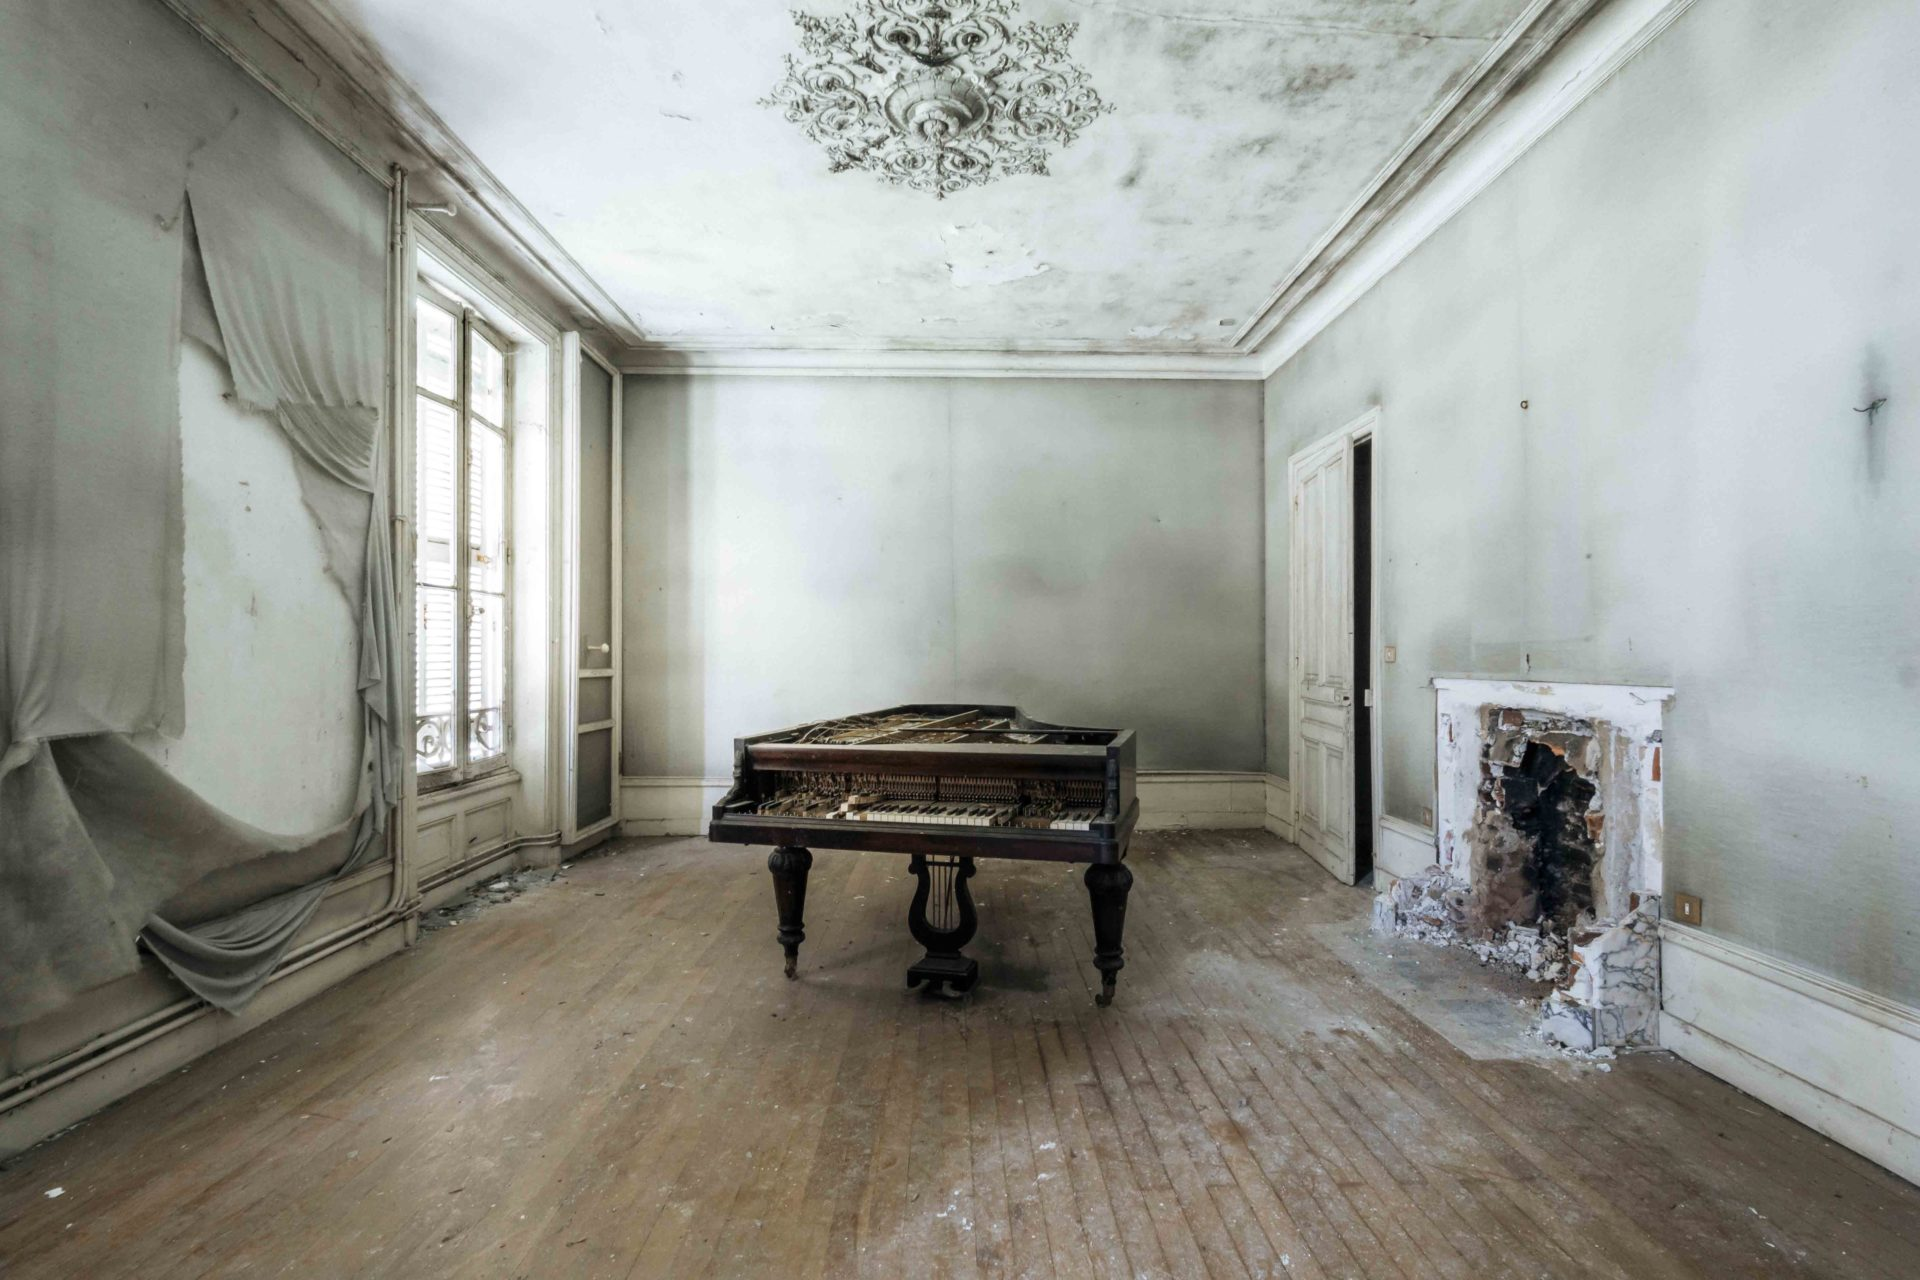 Requiem pour pianos 10 | Serie Requiem pour pianos | Romain Thiery | France